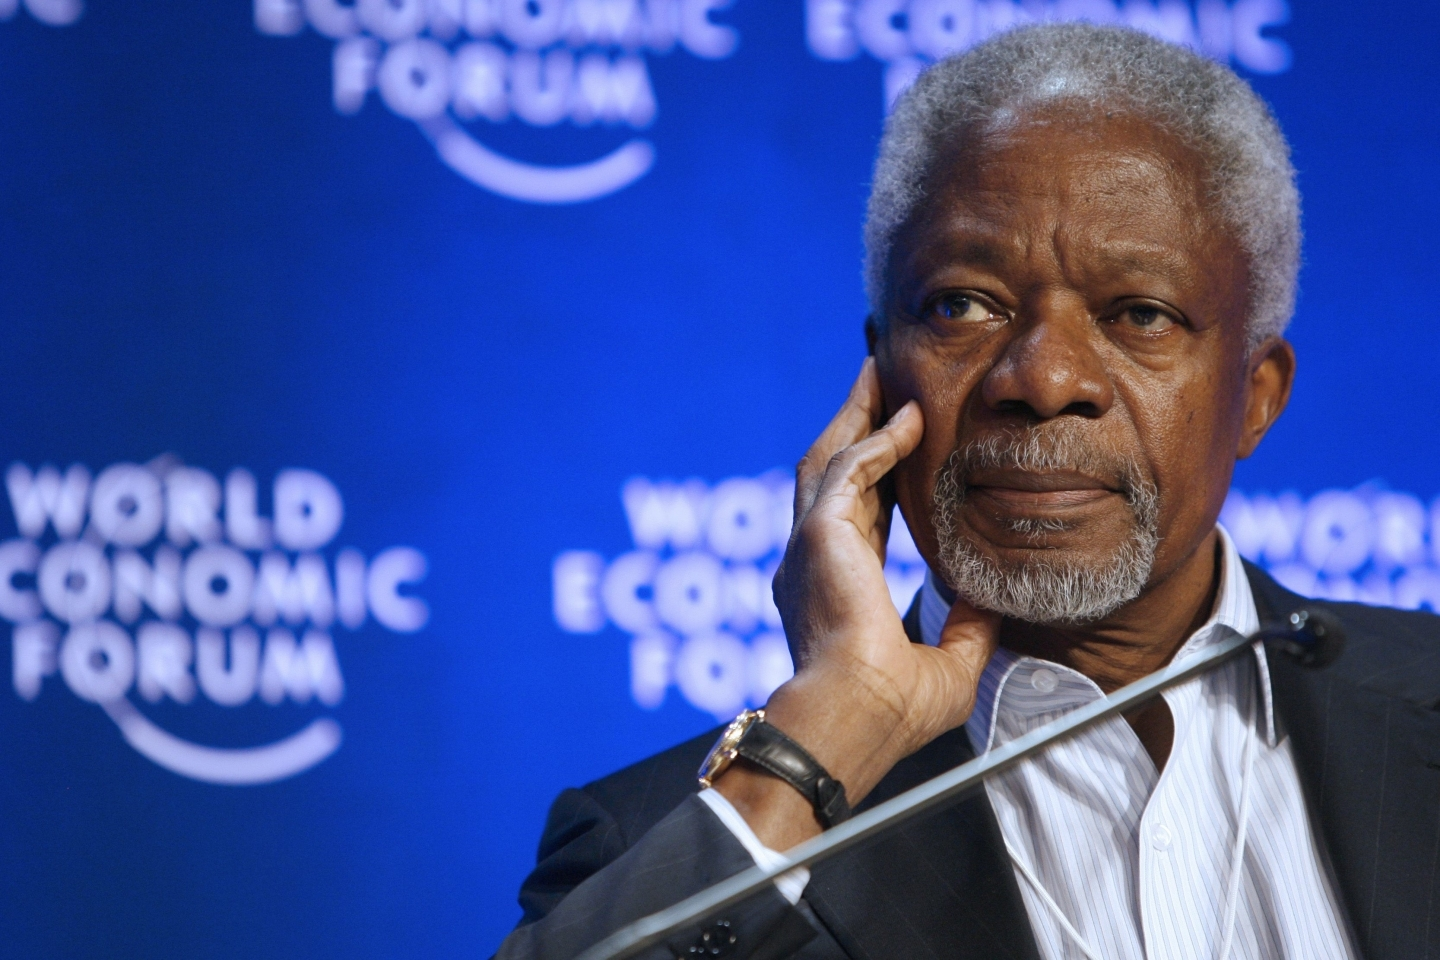 Kofi Annan, member of the Foundation Board of the World Economic Forum, in Davos, Switzerland (AP Photo/KEYSTONE/Alessandro Della Bella)